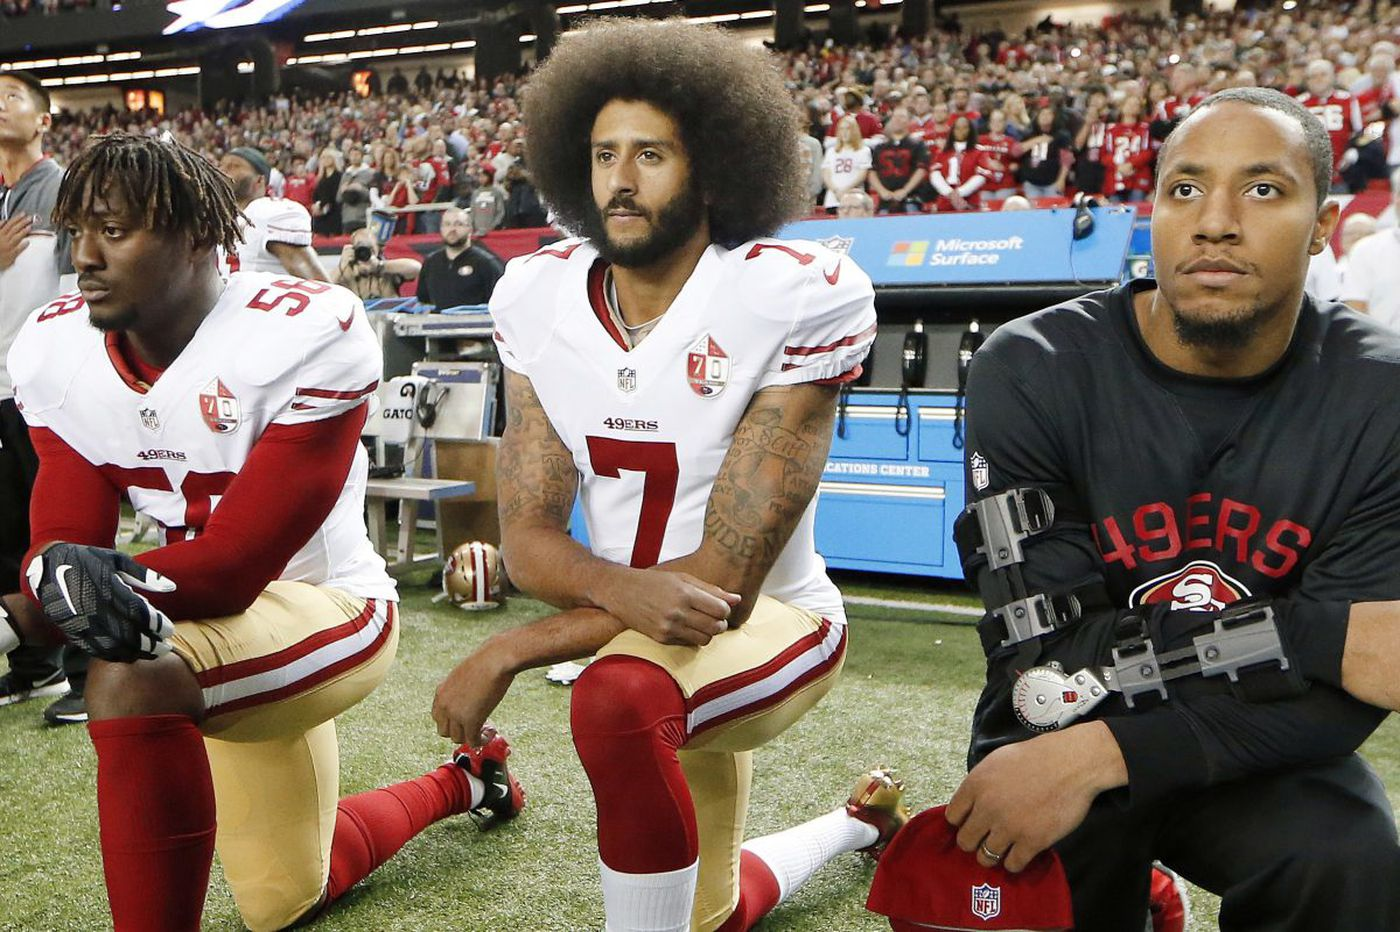 Colin Kaepernick's decision to take a knee will be his lasting legacy | Bob Brookover